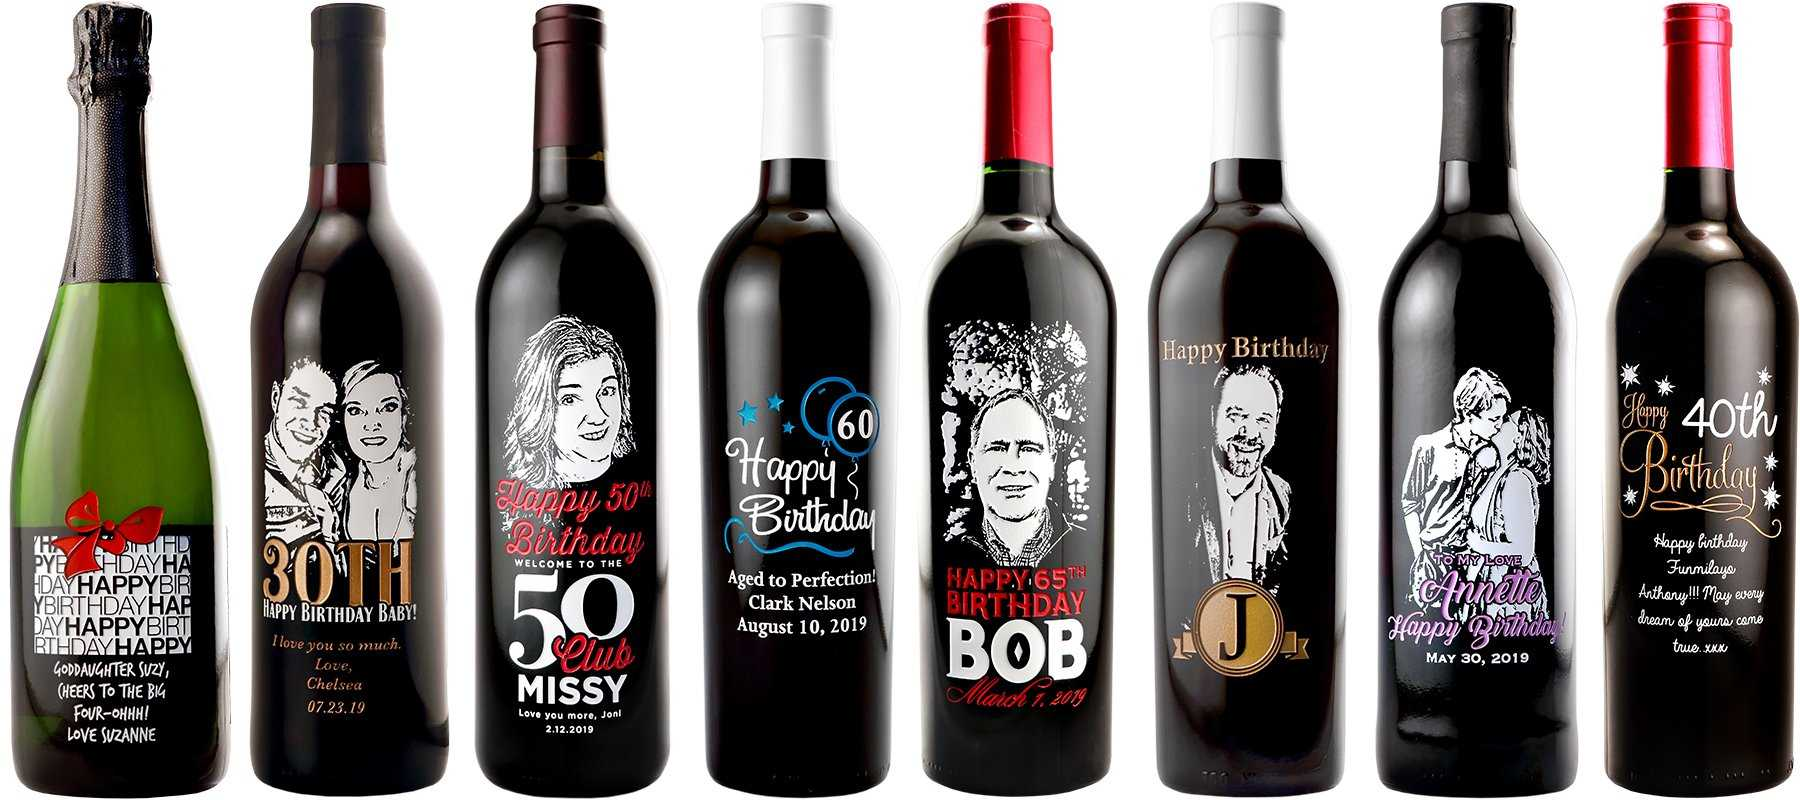 Personalized birthday wine bottles by Etching Expressions